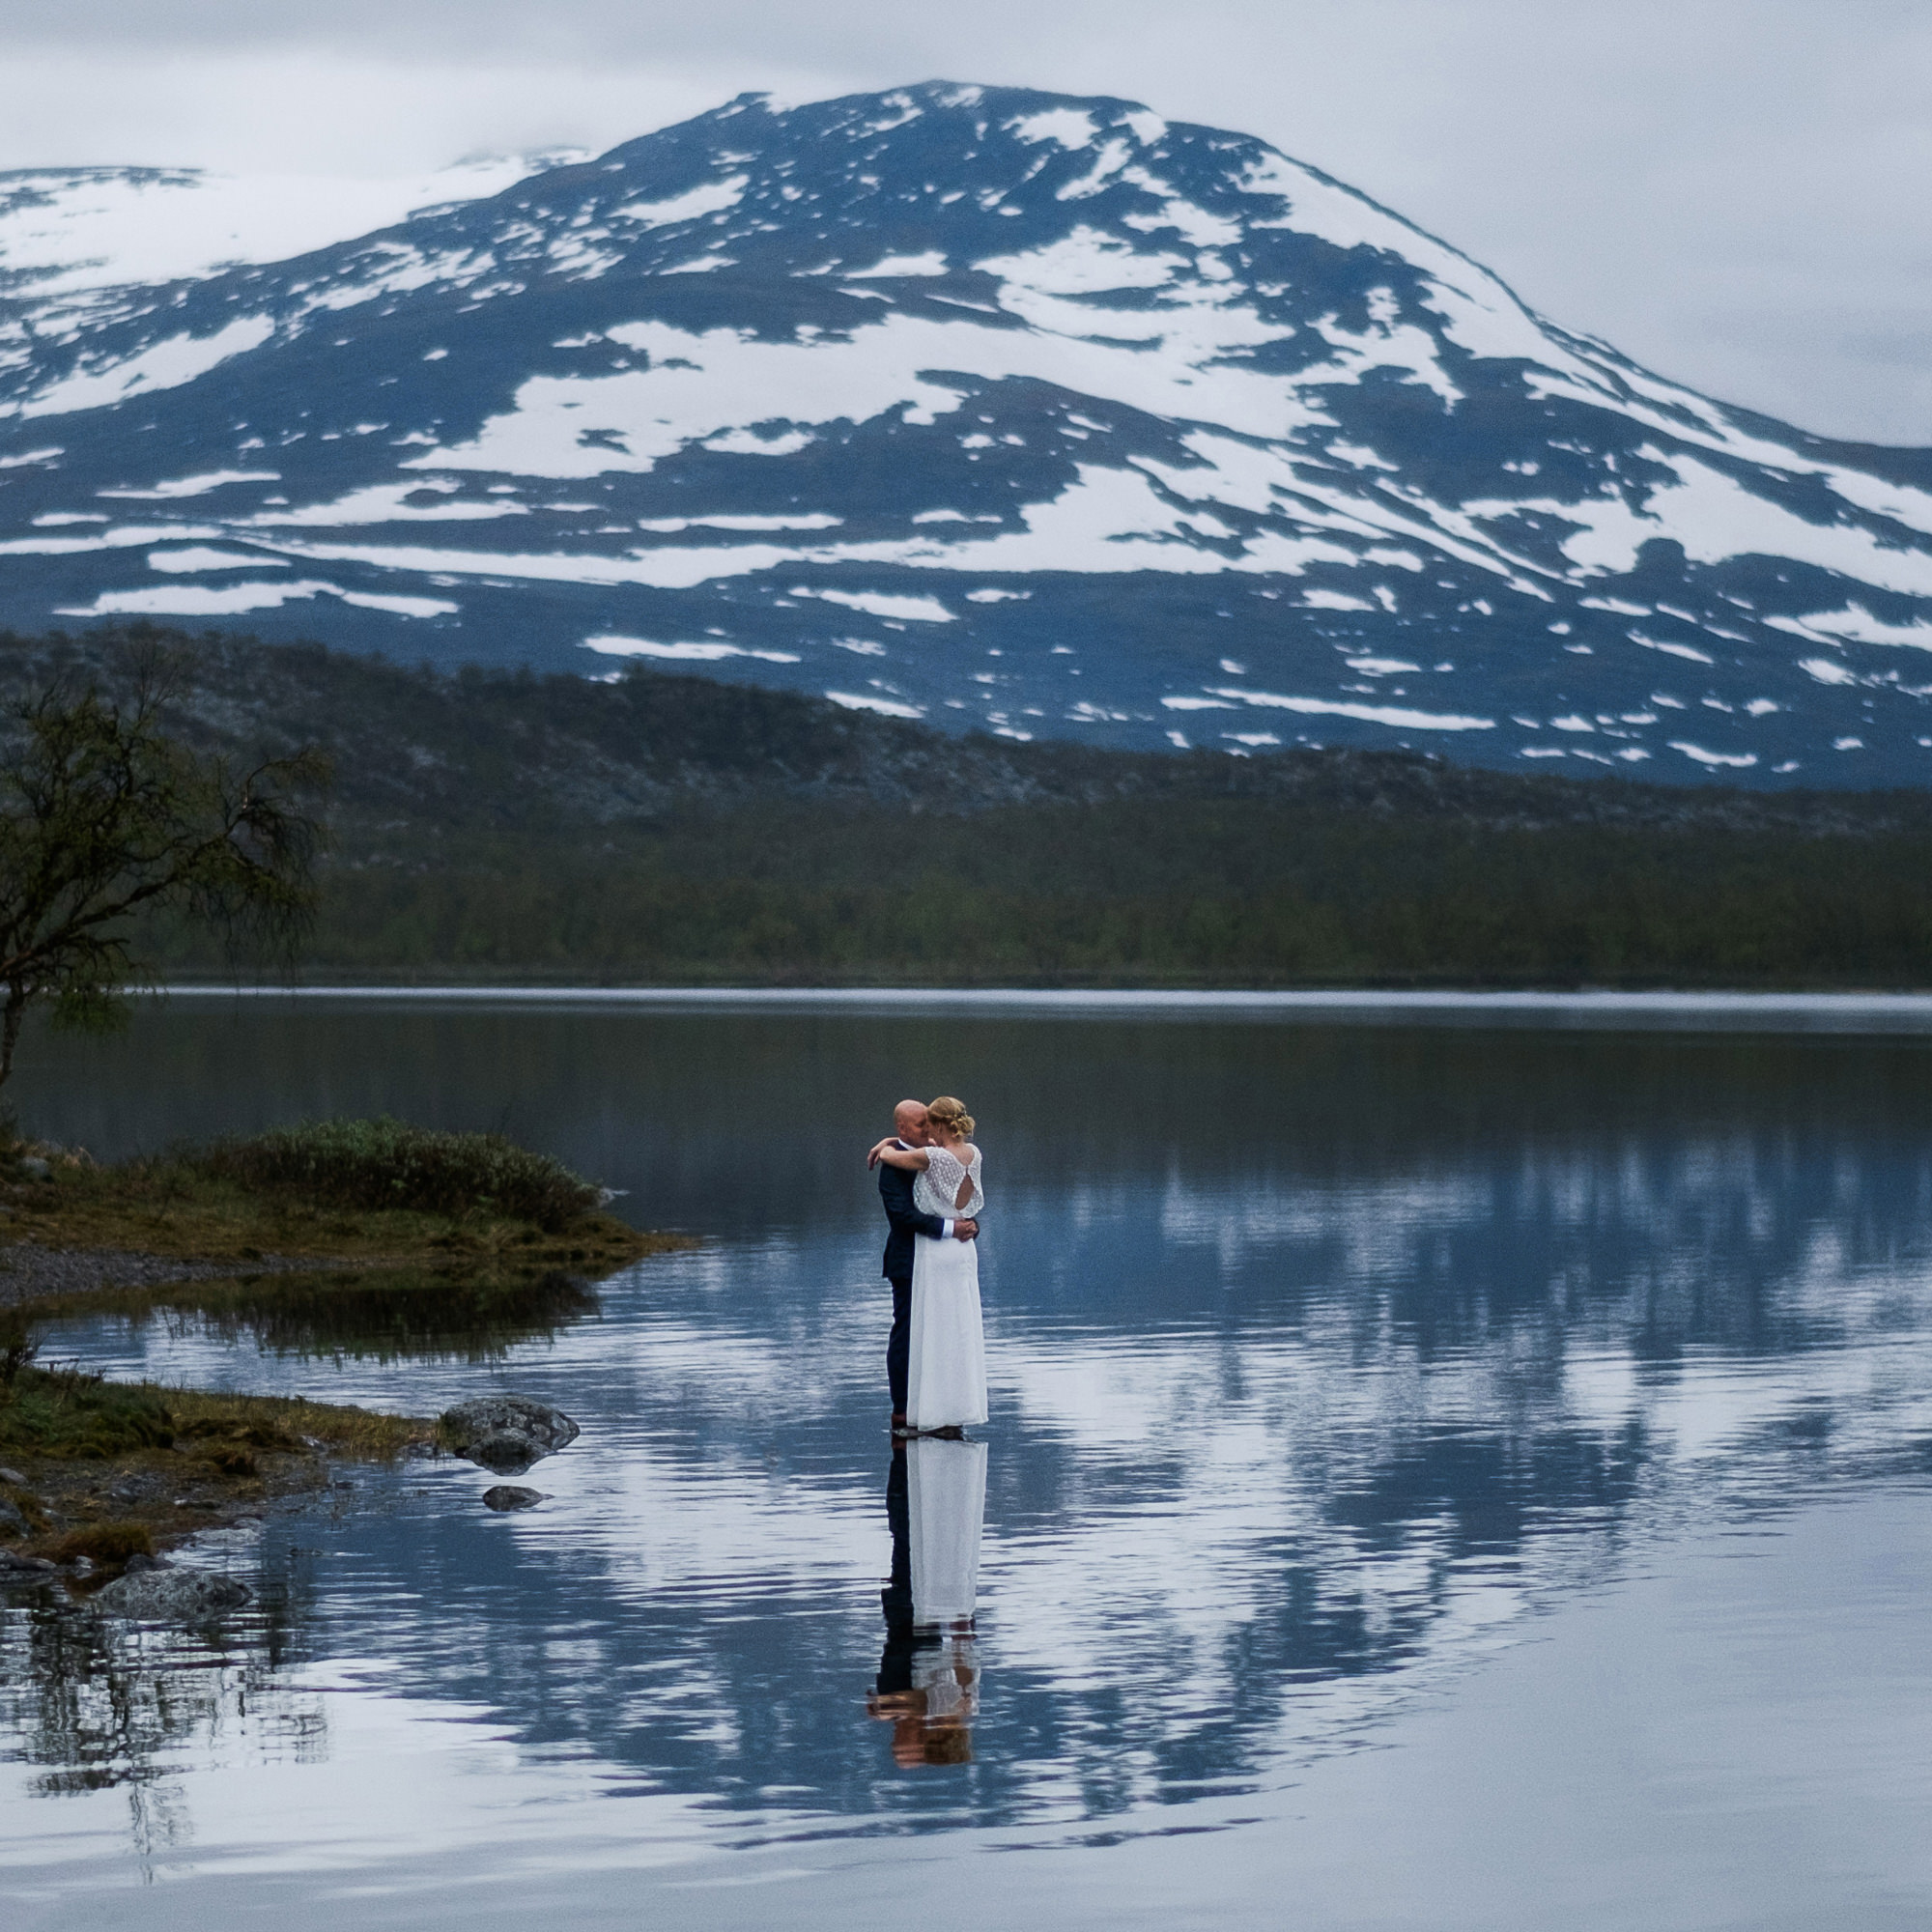 Couple embracing against mountain with reflection photo by Nordica Photography